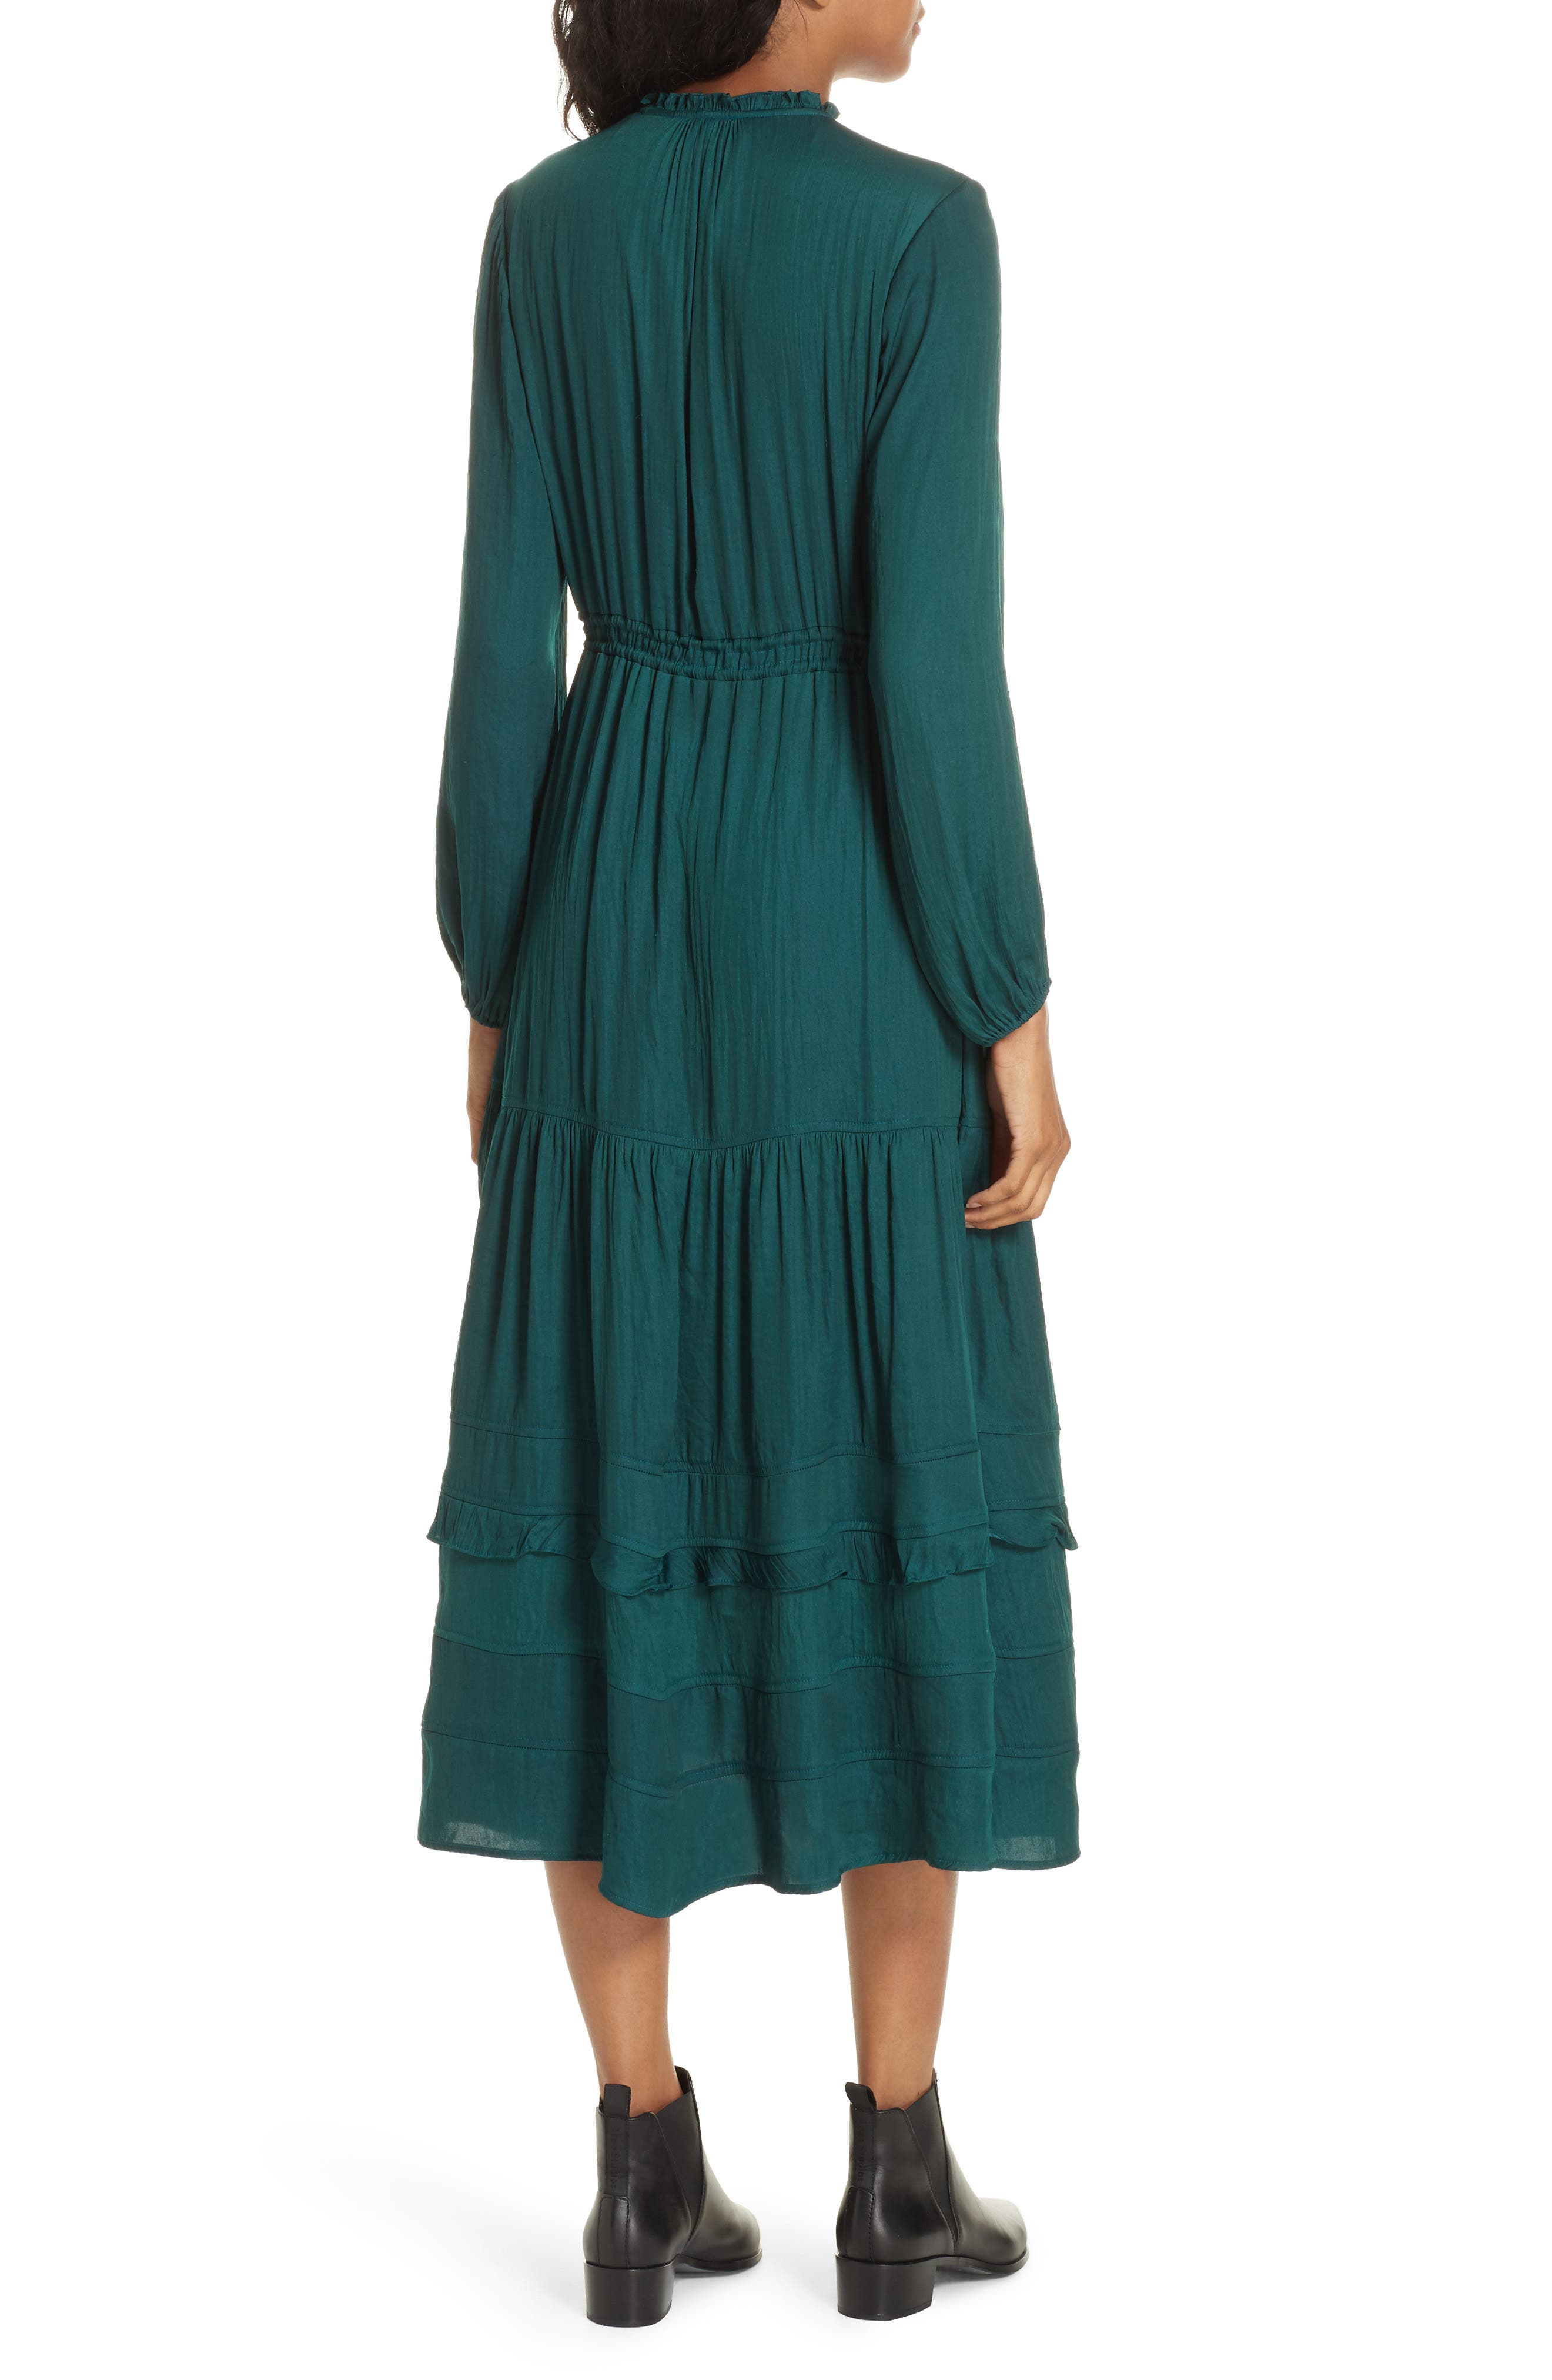 Tassel Tie Midi Dress,                             Alternate thumbnail 2, color,                             FOREST